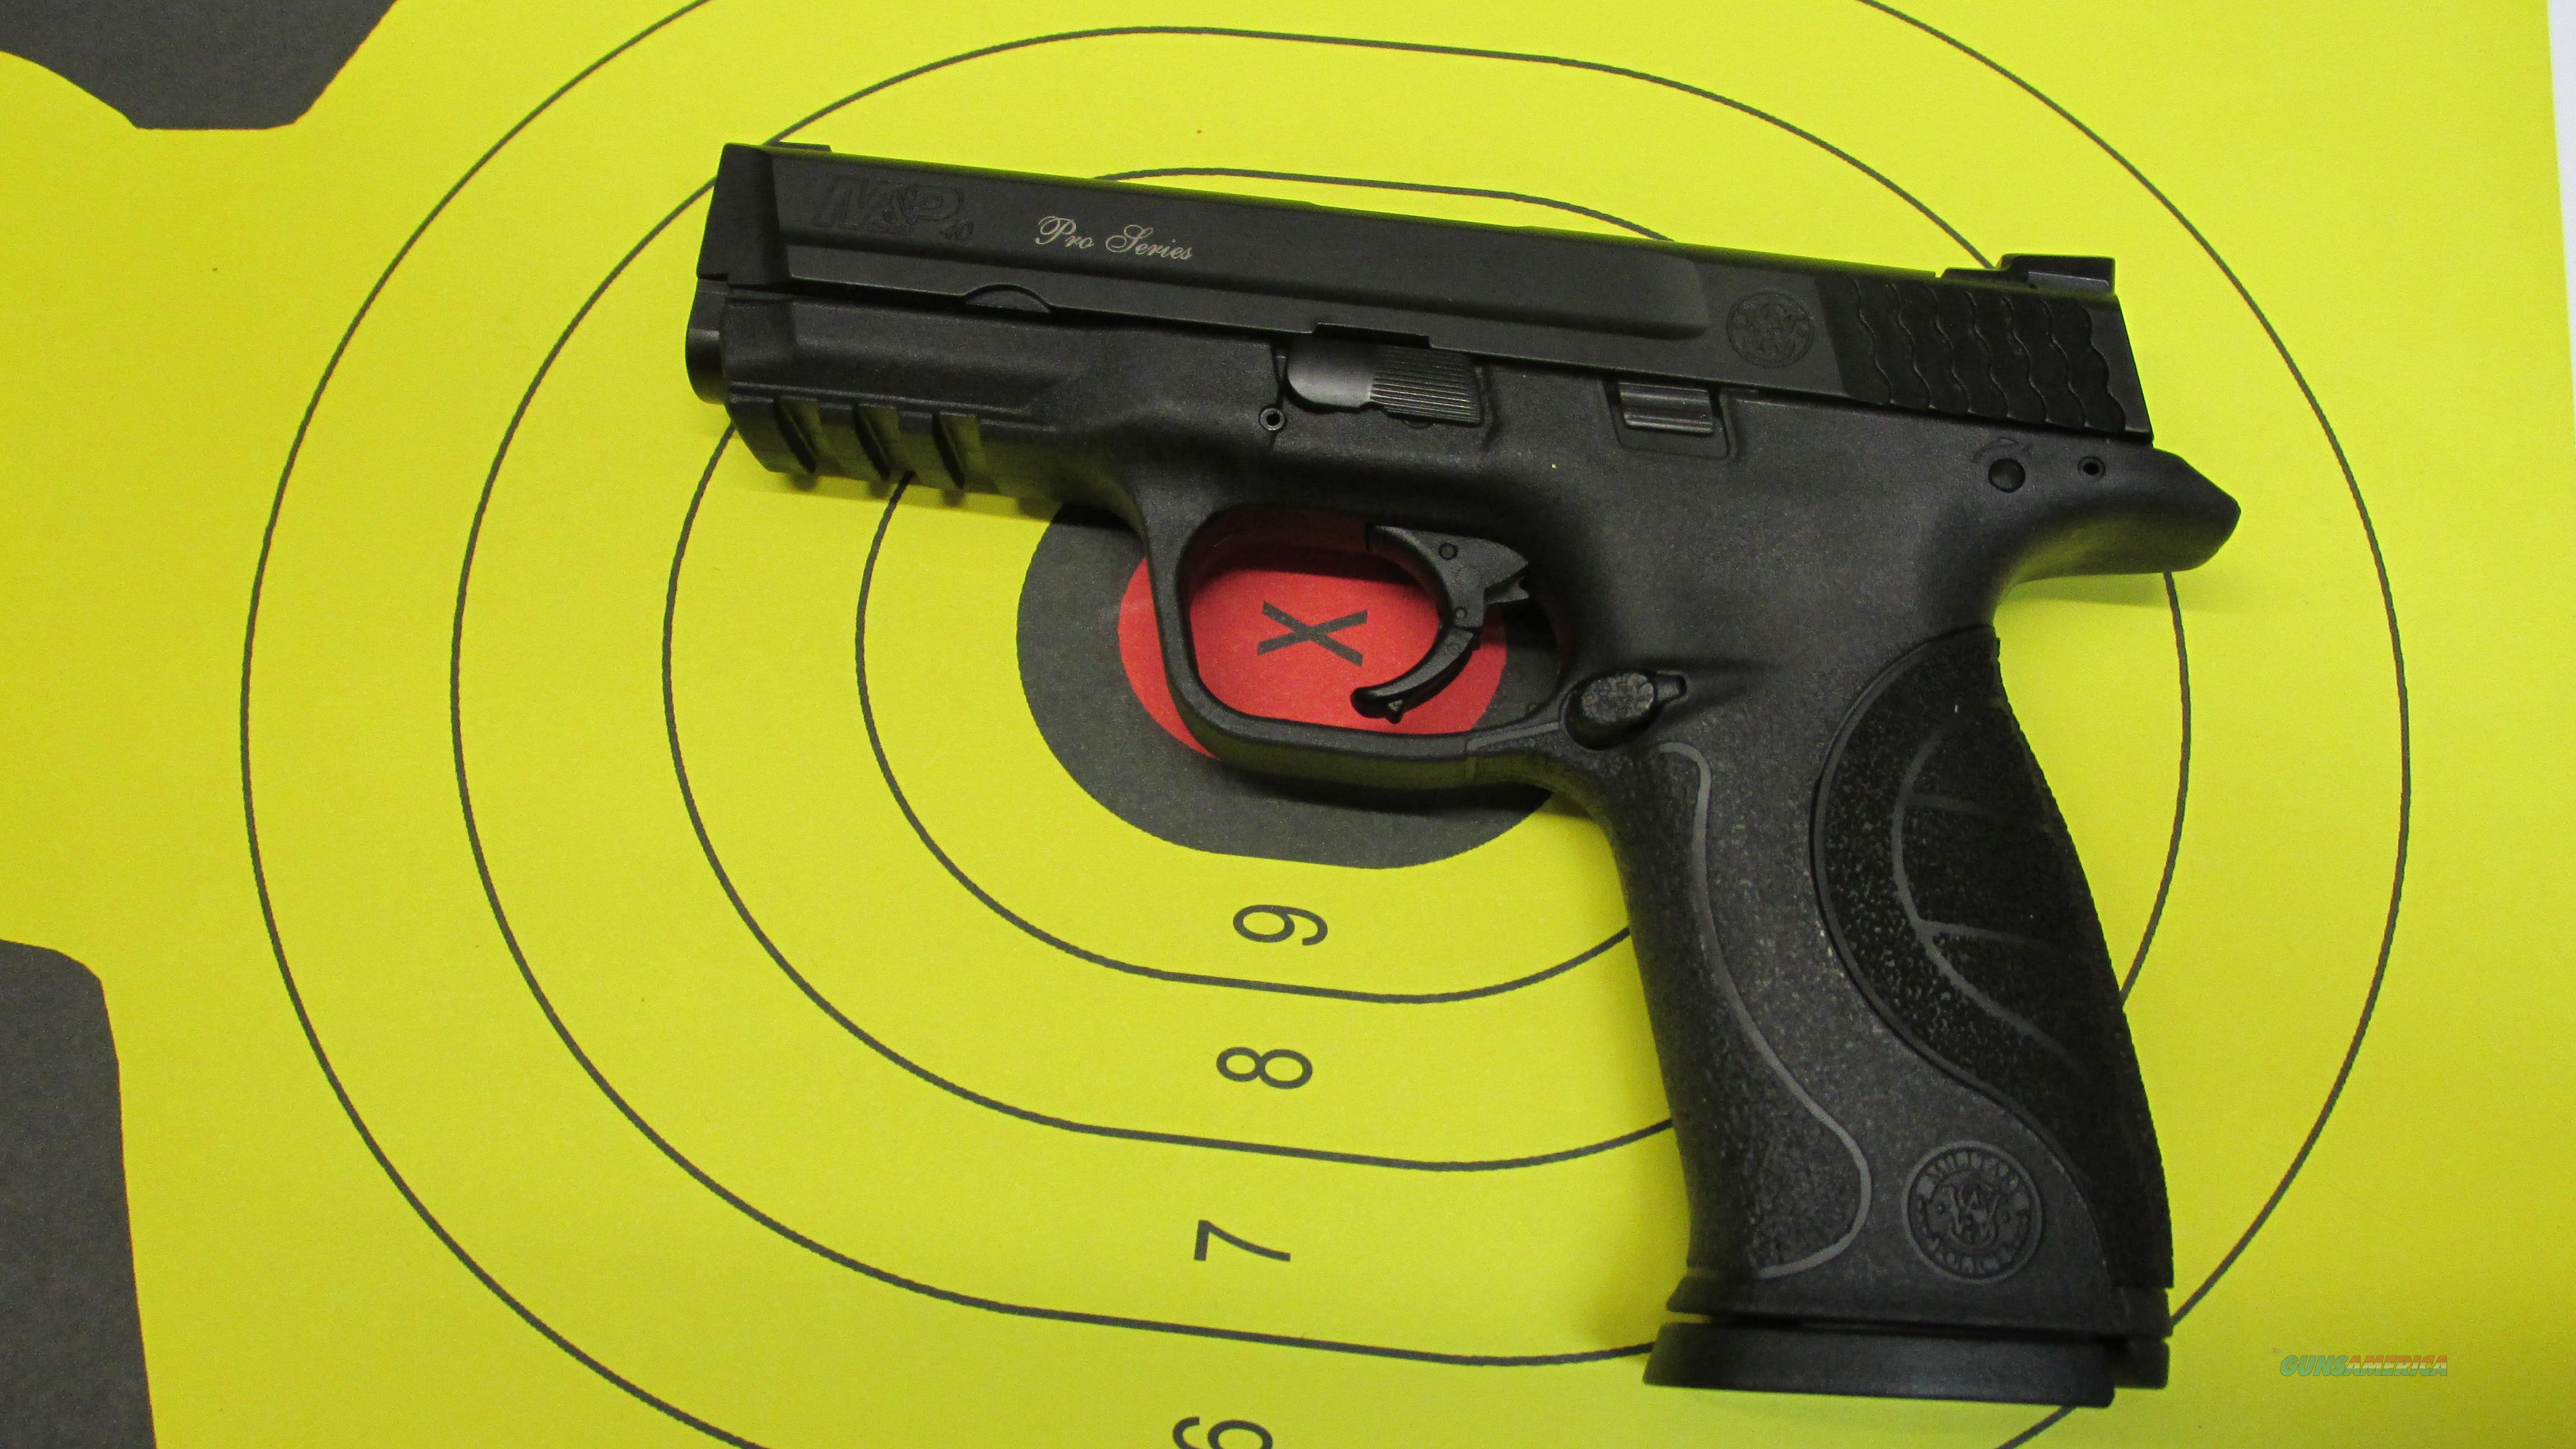 "SMITH &WESSON M&P40 PRO SERIES WITH NIGHT SIGHTS, 40 S&W PISTOL, (2) 15 ROUND MAGAZINES, 4.25"" BARREL  Guns > Pistols > Smith & Wesson Pistols - Autos > Polymer Frame"